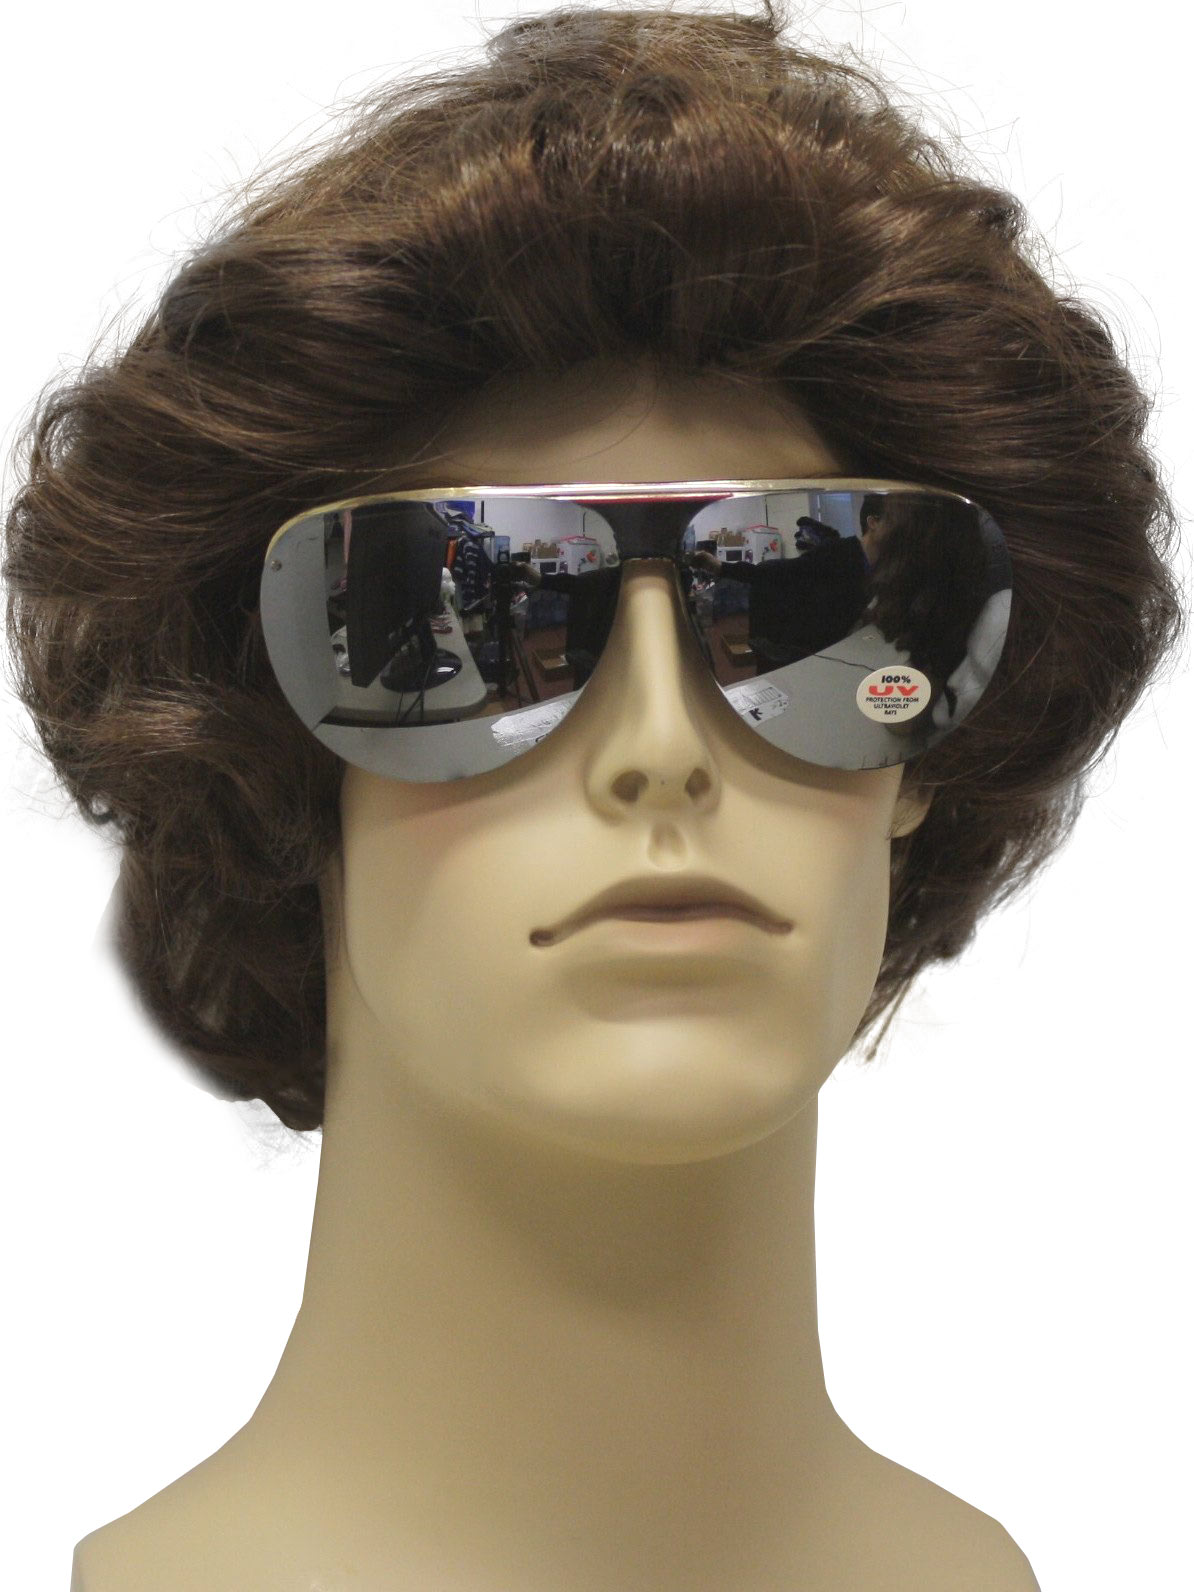 Rimless Glasses Are Ugly : RustyZipper.Com Vintage Clothing on the Web - Over 15,000 ...